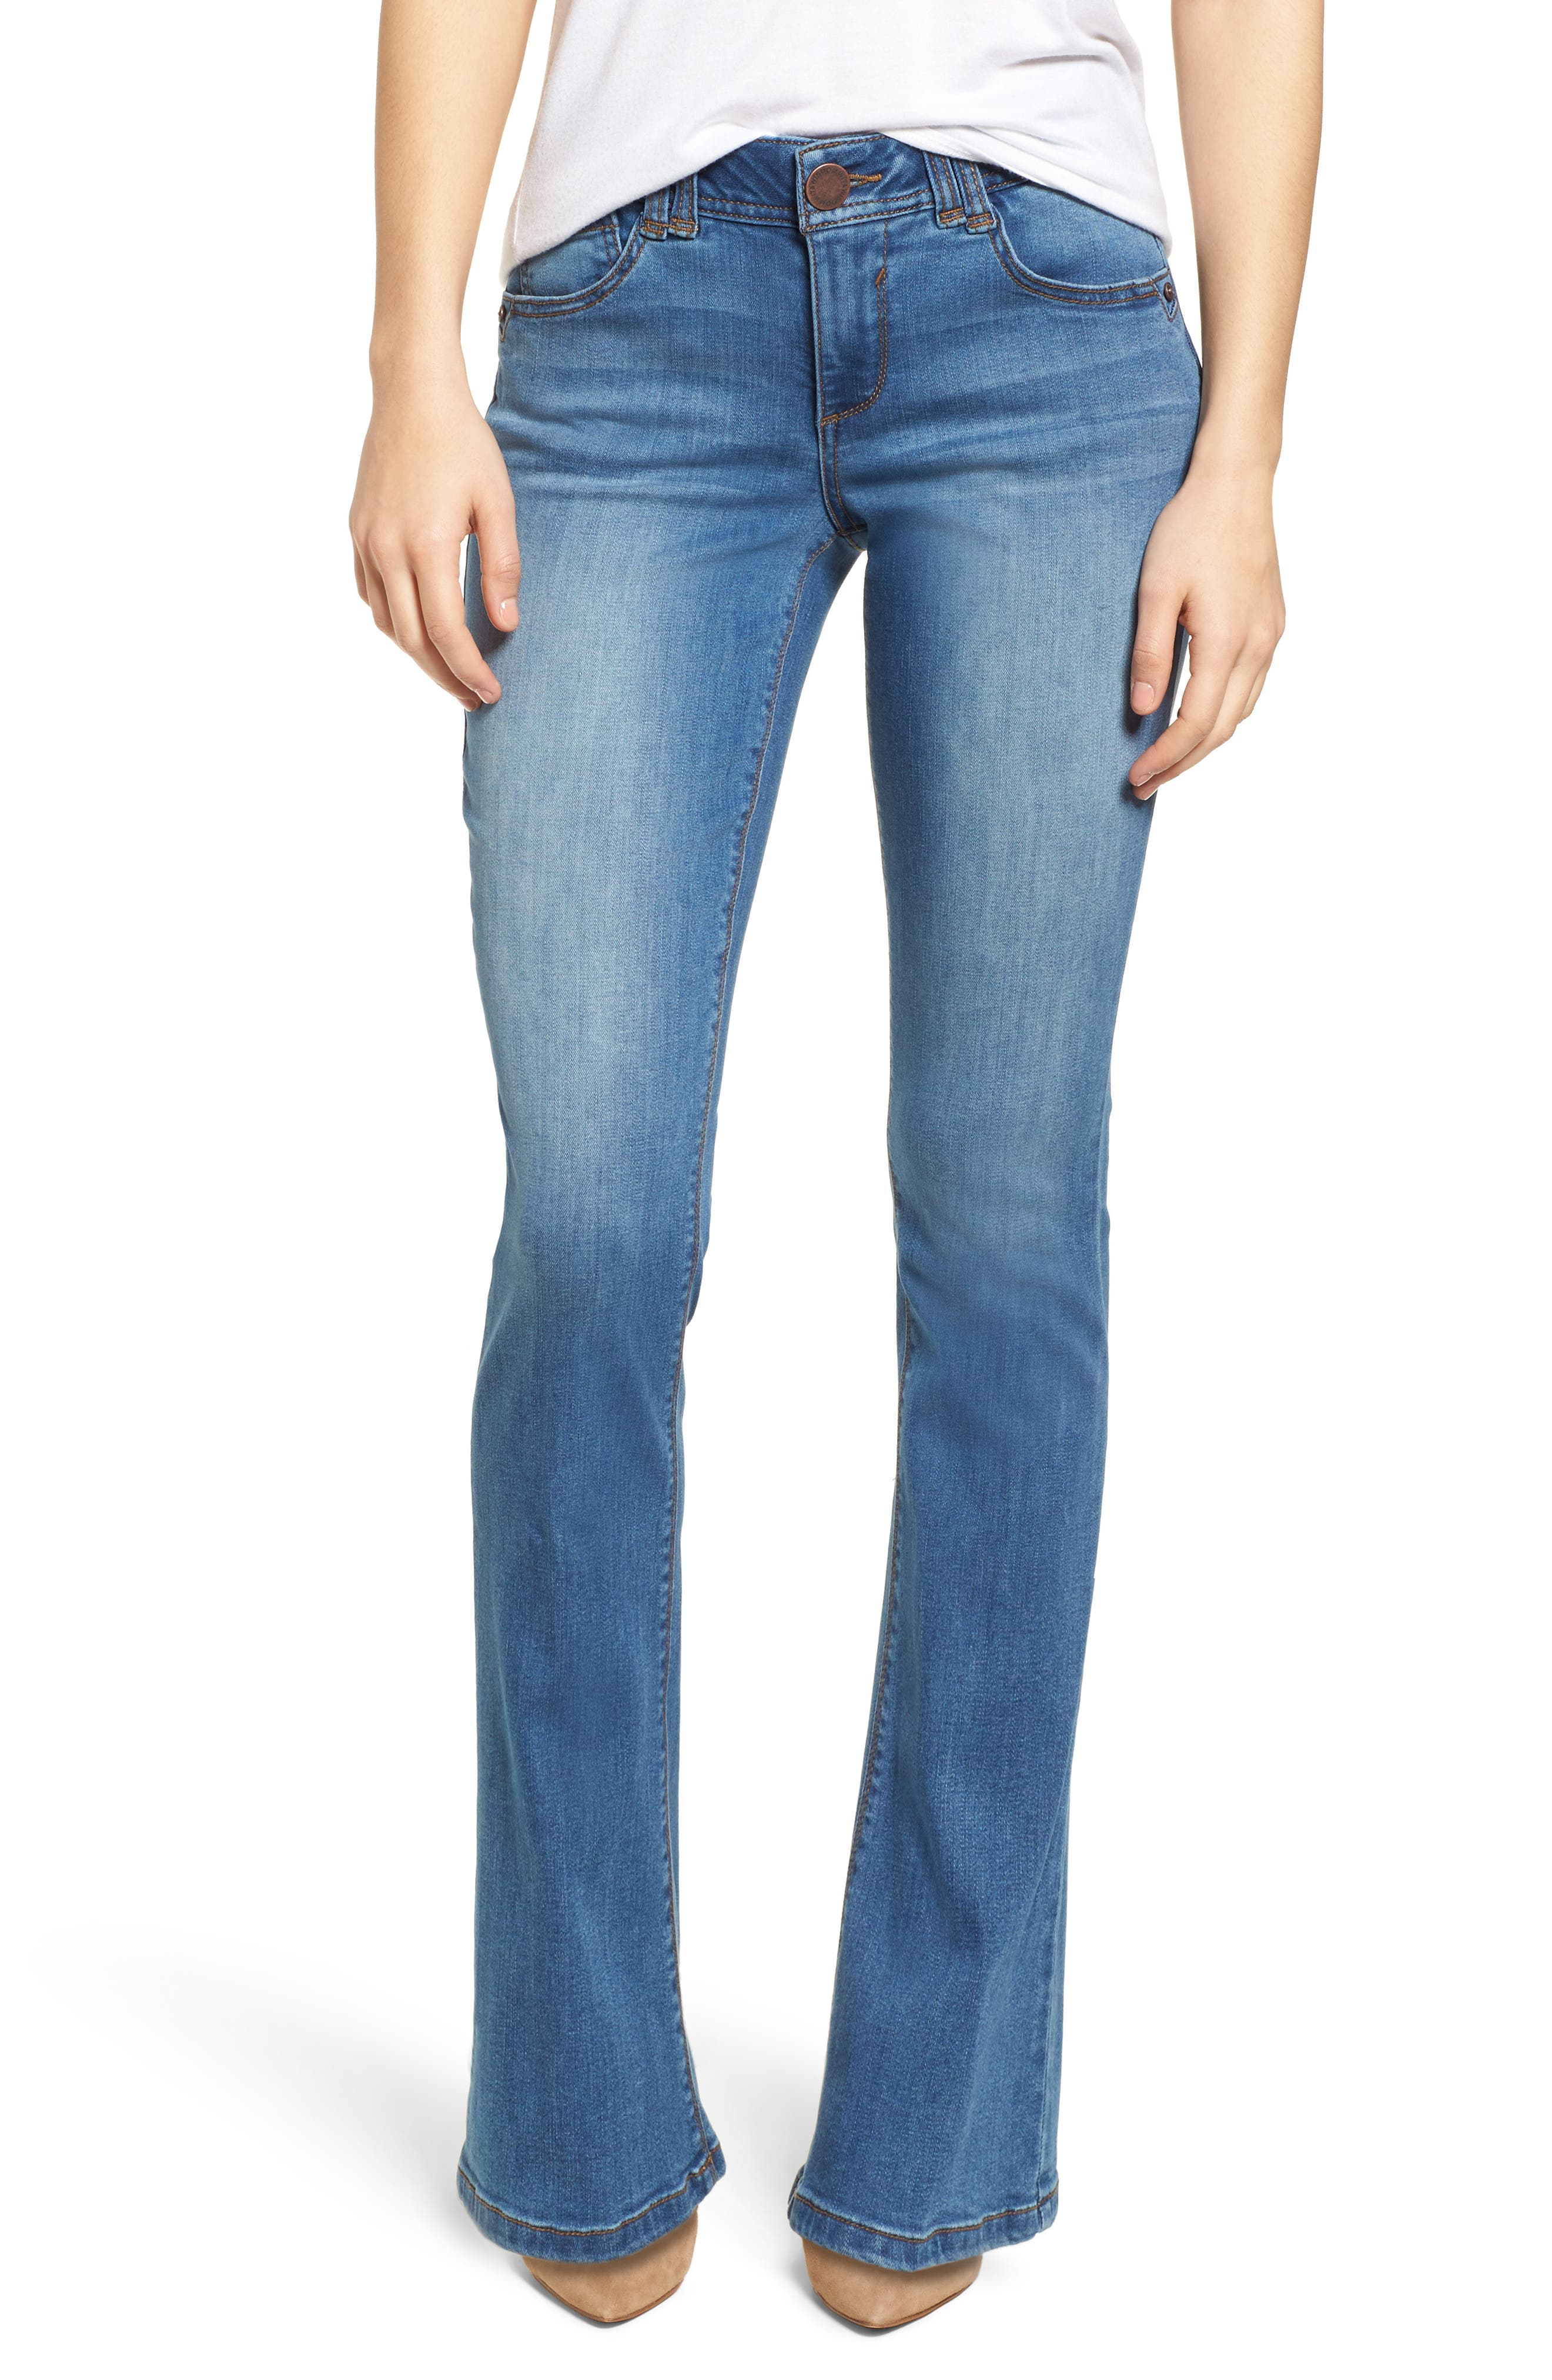 WIT & WISDOM, Ab-solution Itty Bitty Bootcut Jeans, Main thumbnail 1, color, LIGHT BLUE